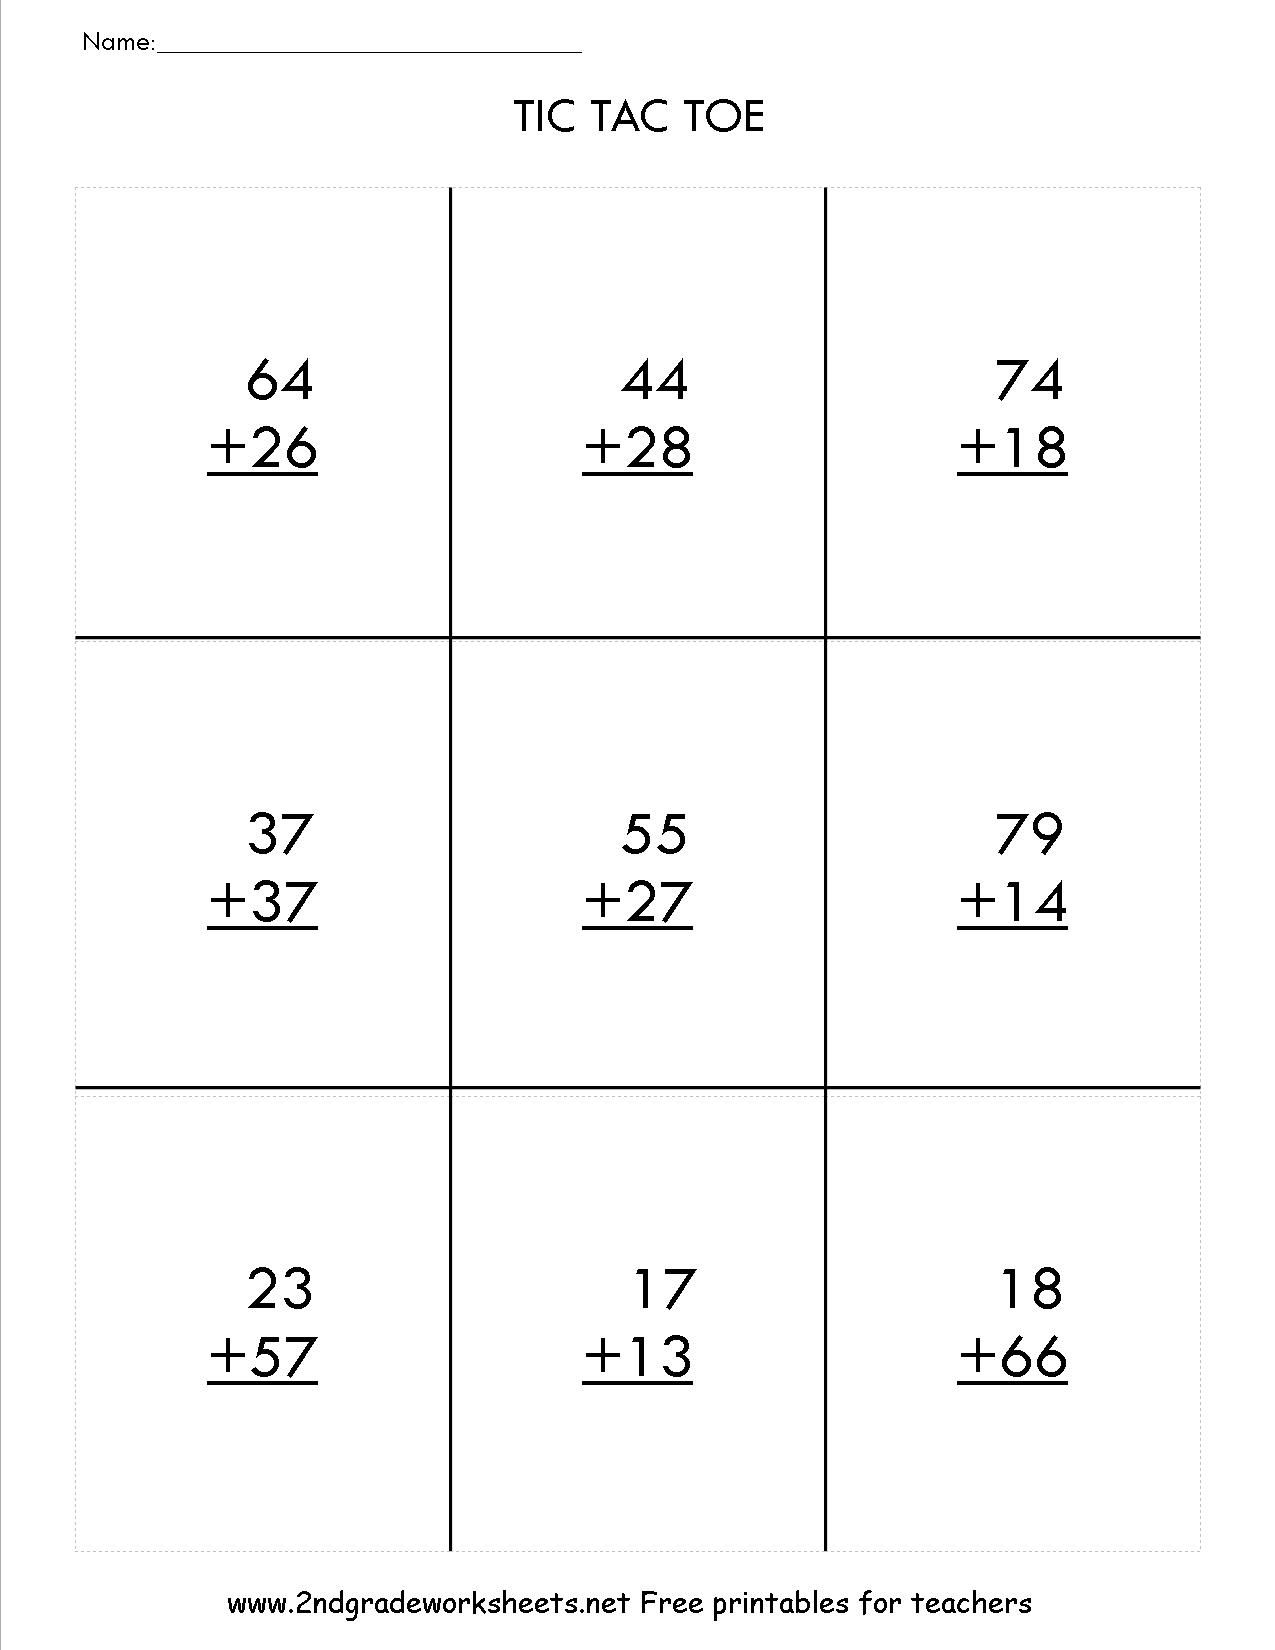 Two Digit Addition With Regrouping Tic Tac Toe Game